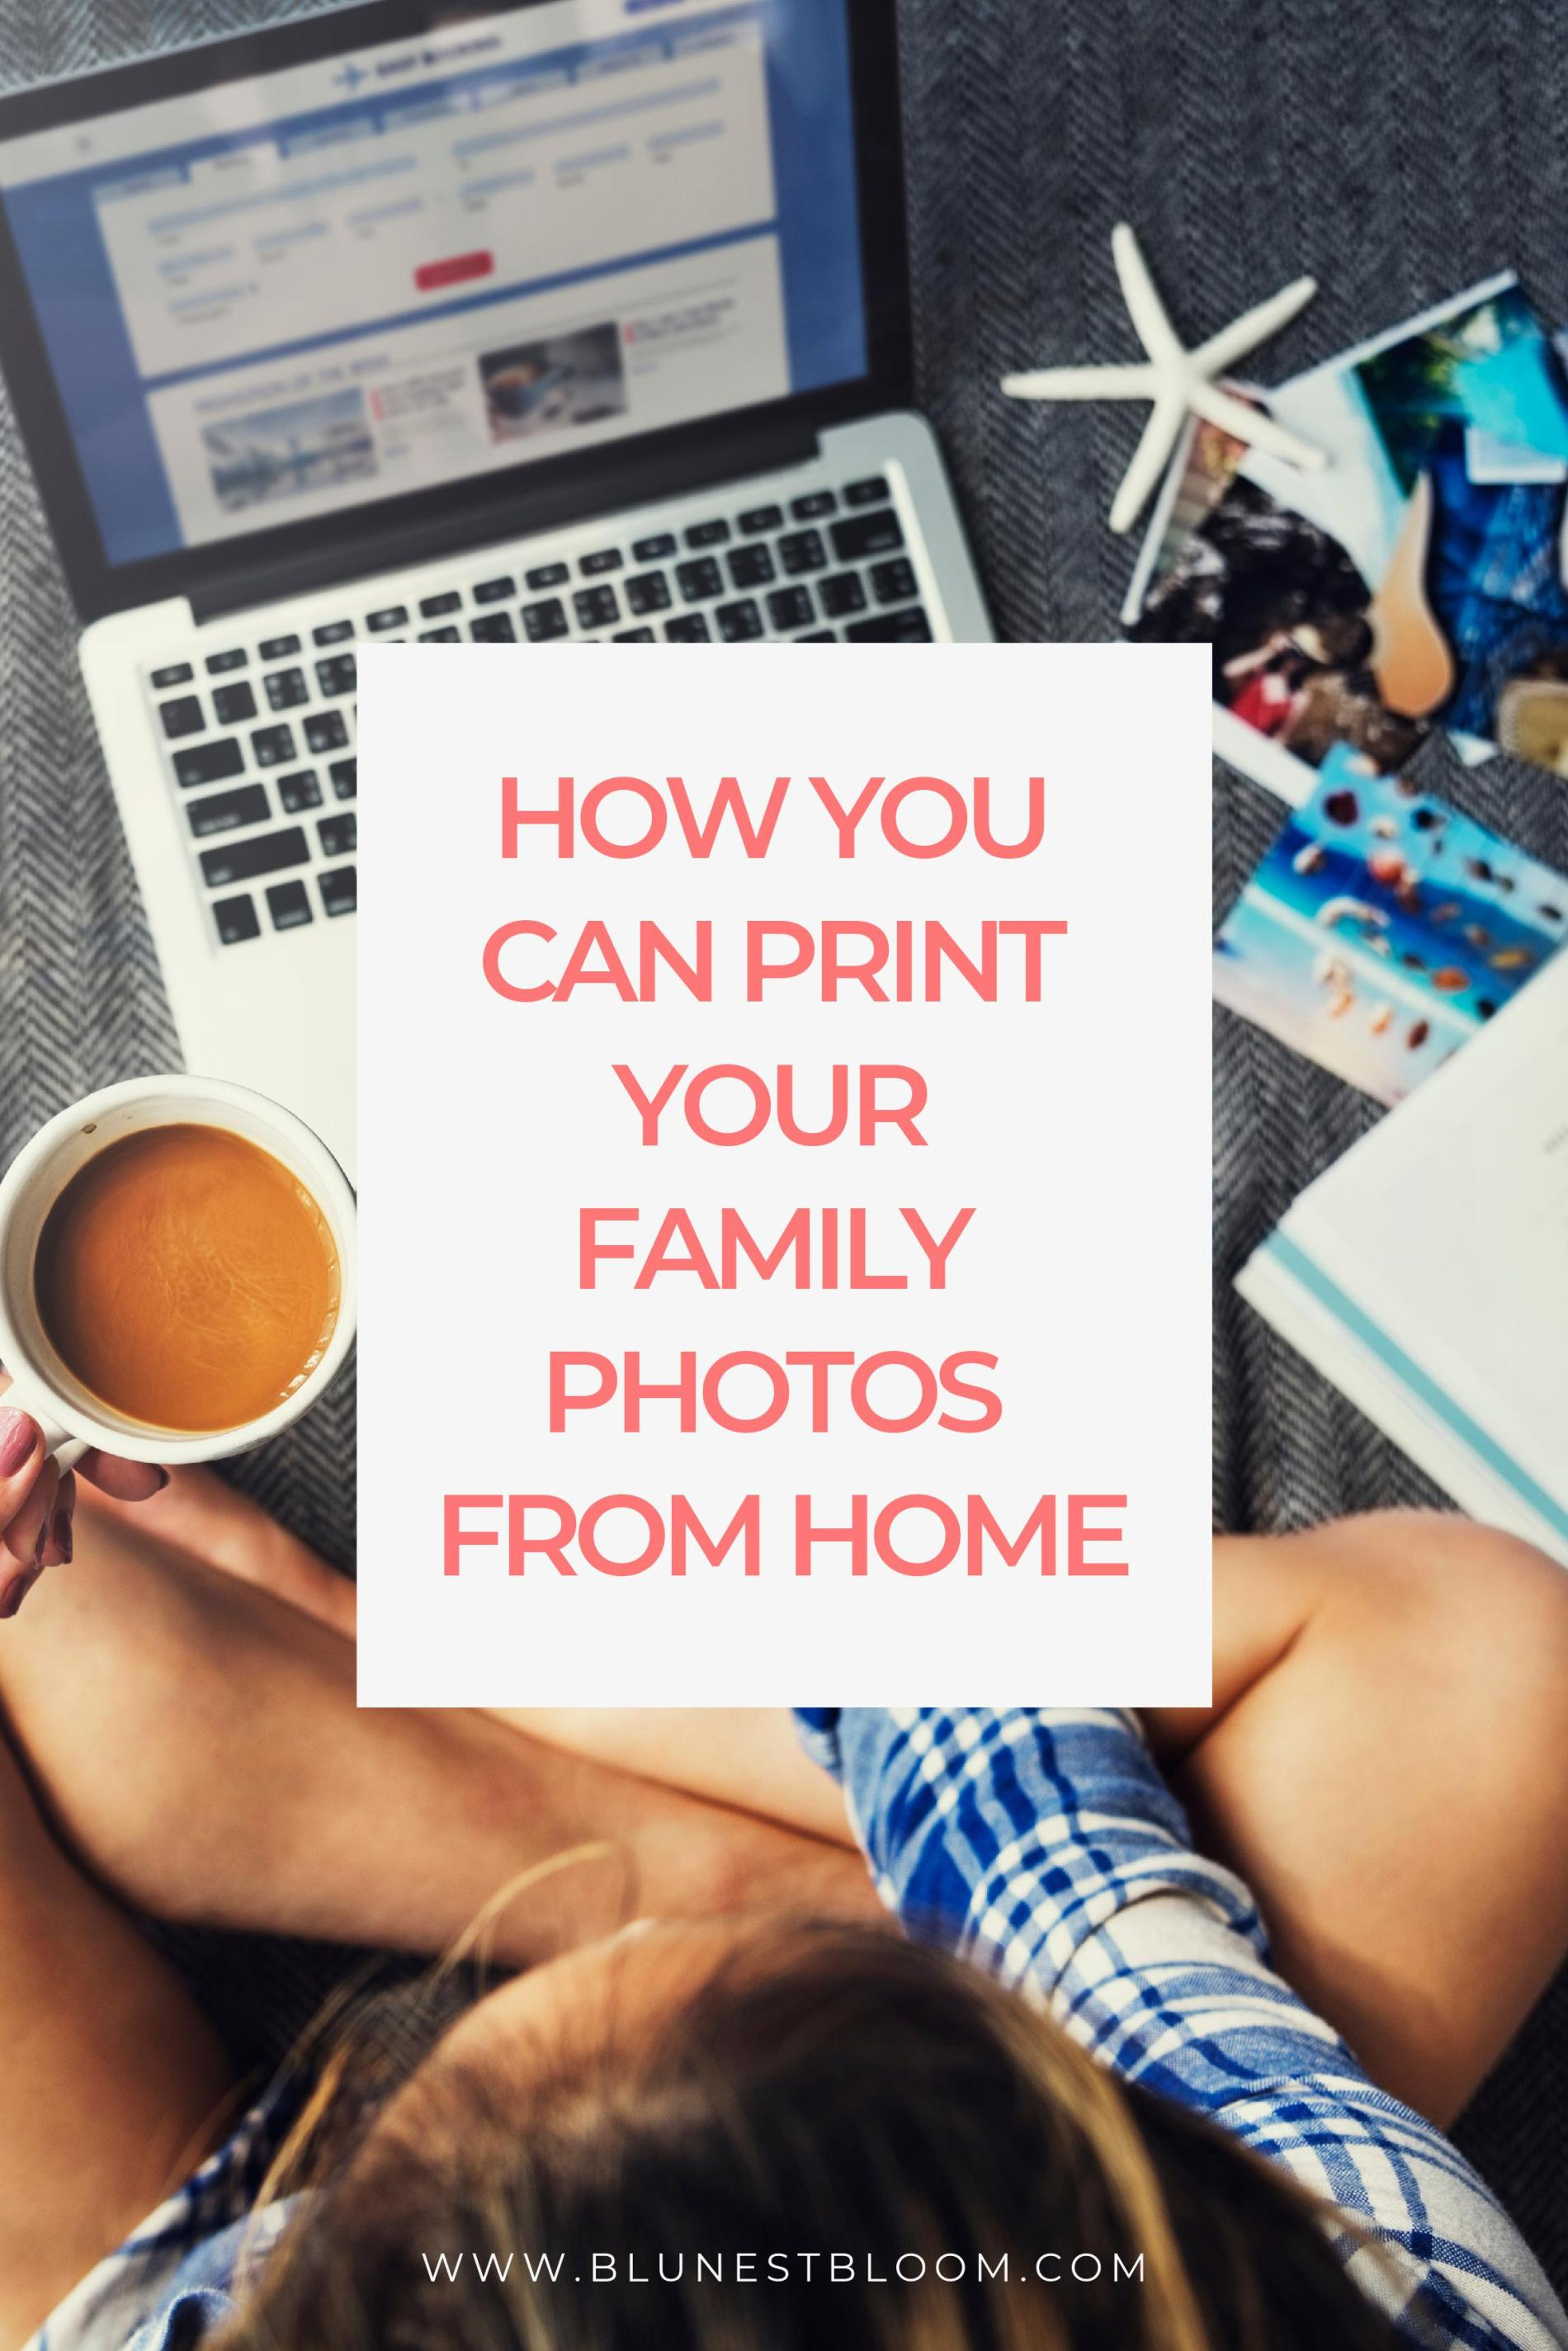 How You an Print Your Family Photos From Home - Pinterest